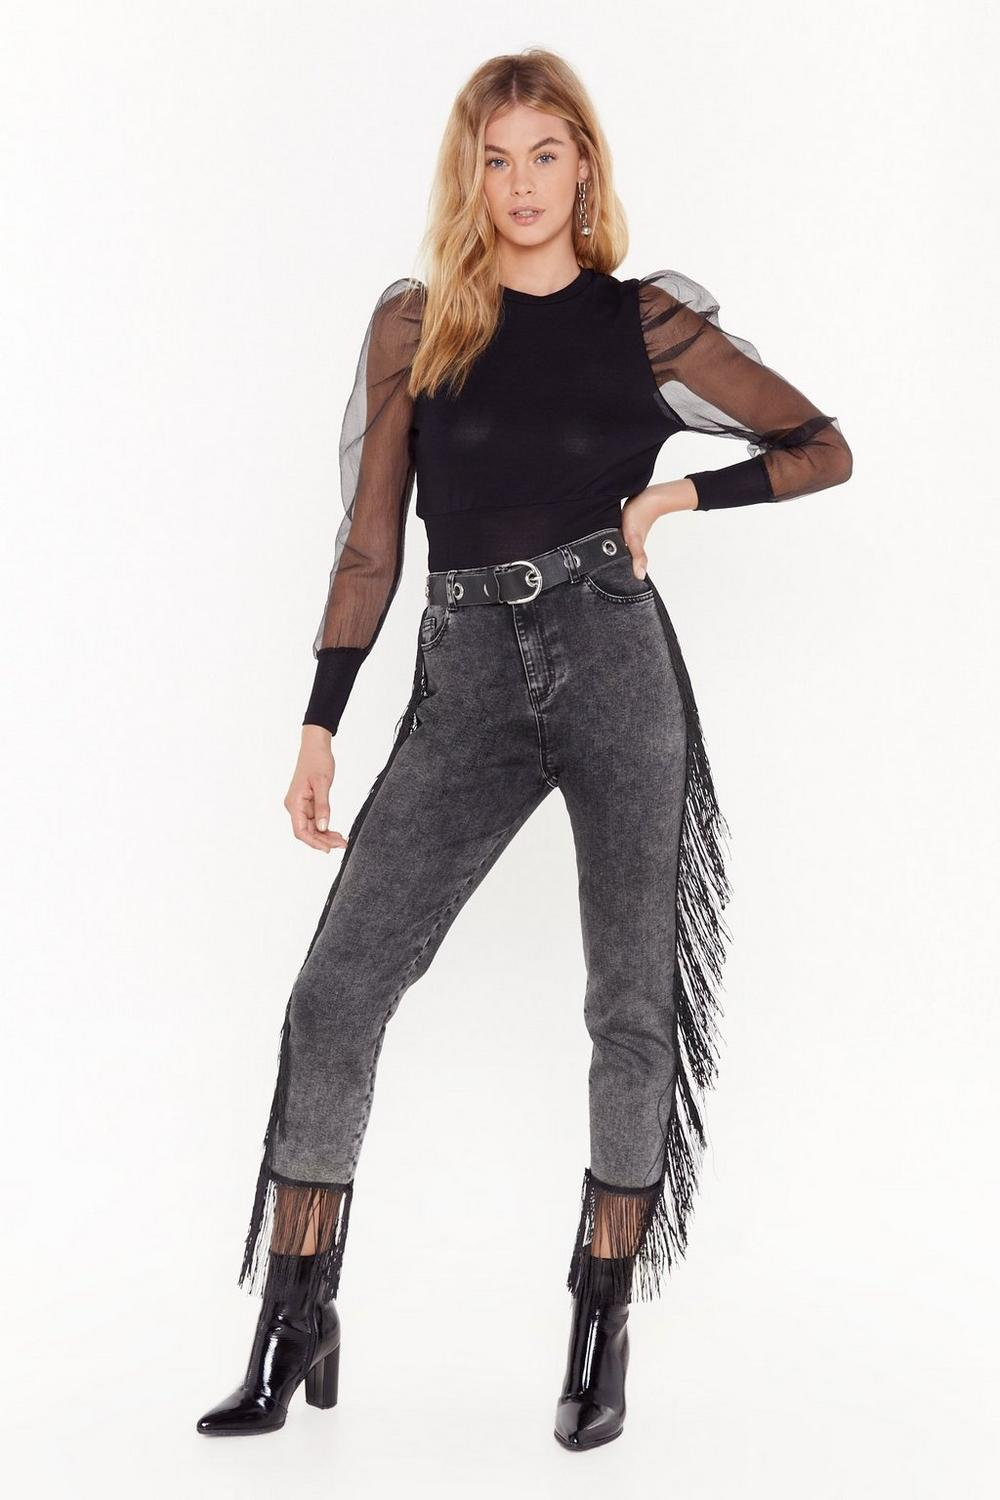 It's Only Rock and Roll Fringe High-Waisted Jeans | Shop Clothes at Nasty Gal #rockandrolloutfits